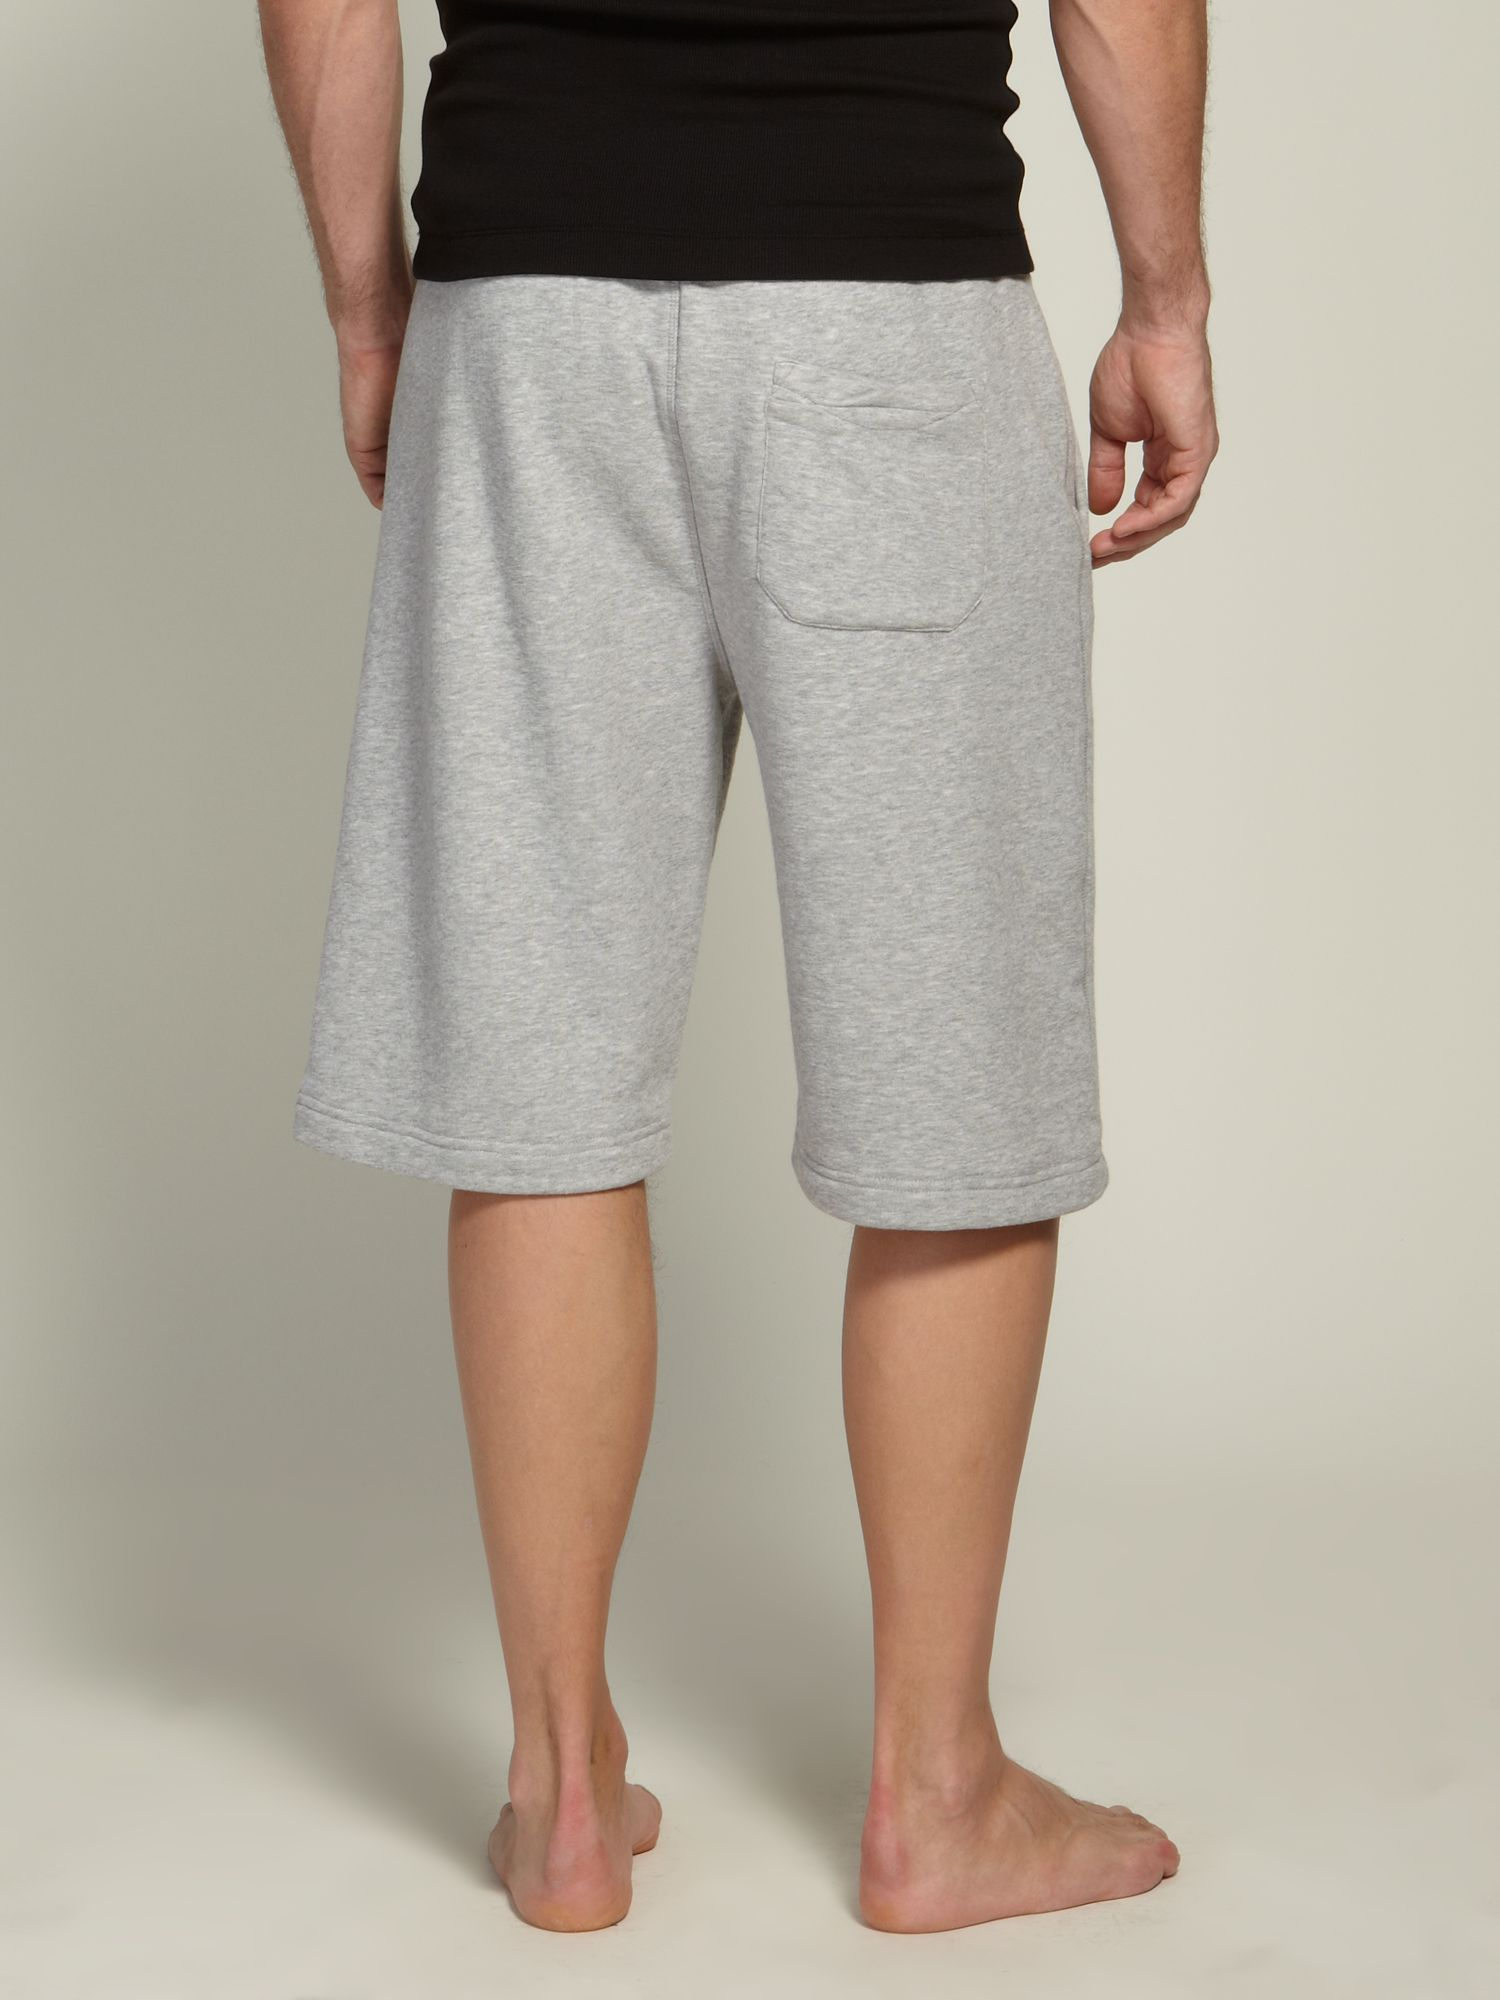 mens sweat shorts trendy clothes